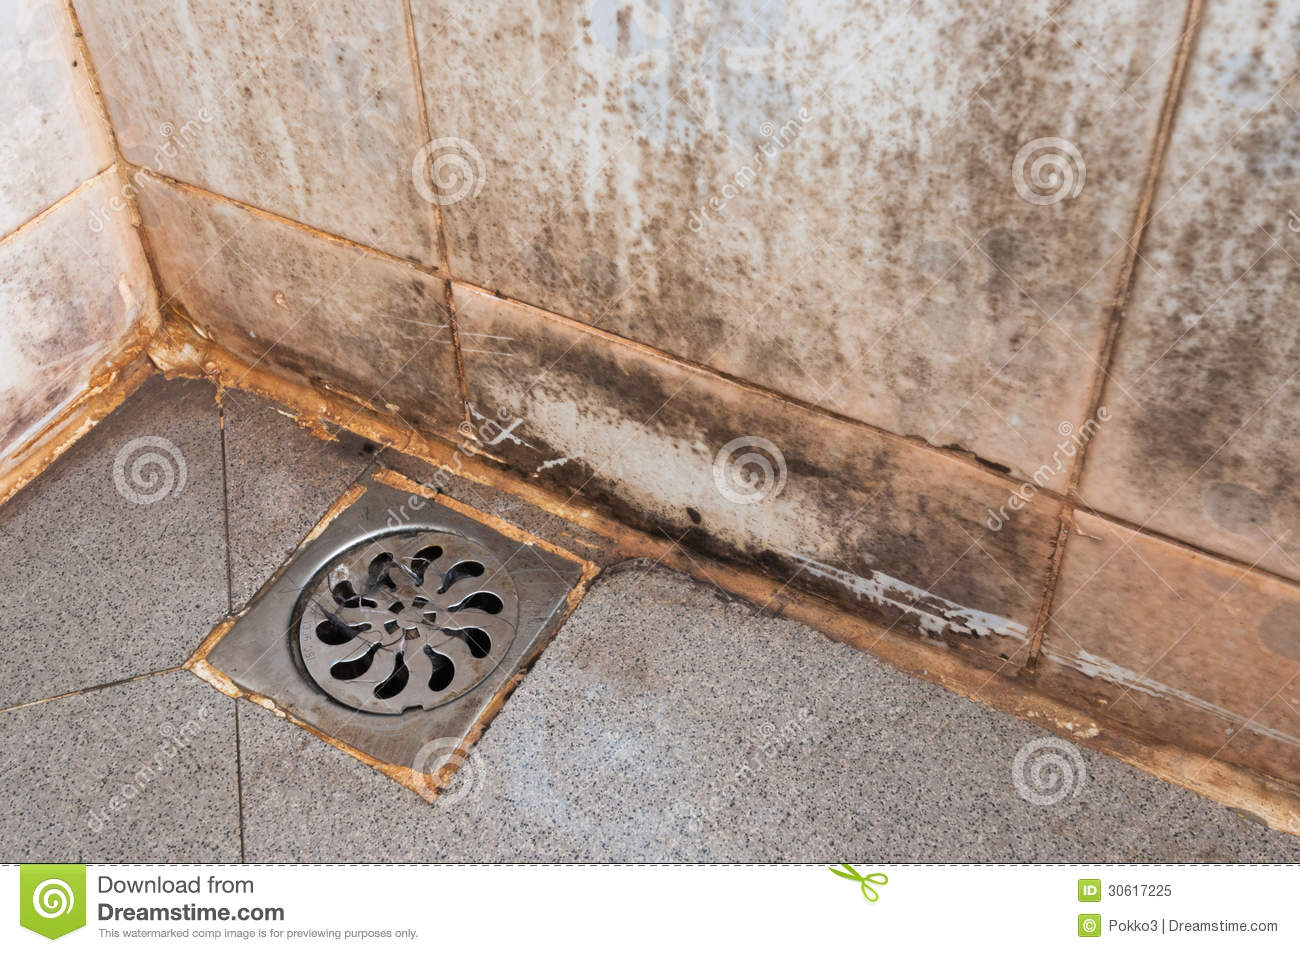 Mold Growing On Shower Tiles Royalty Free Stock Photo ...